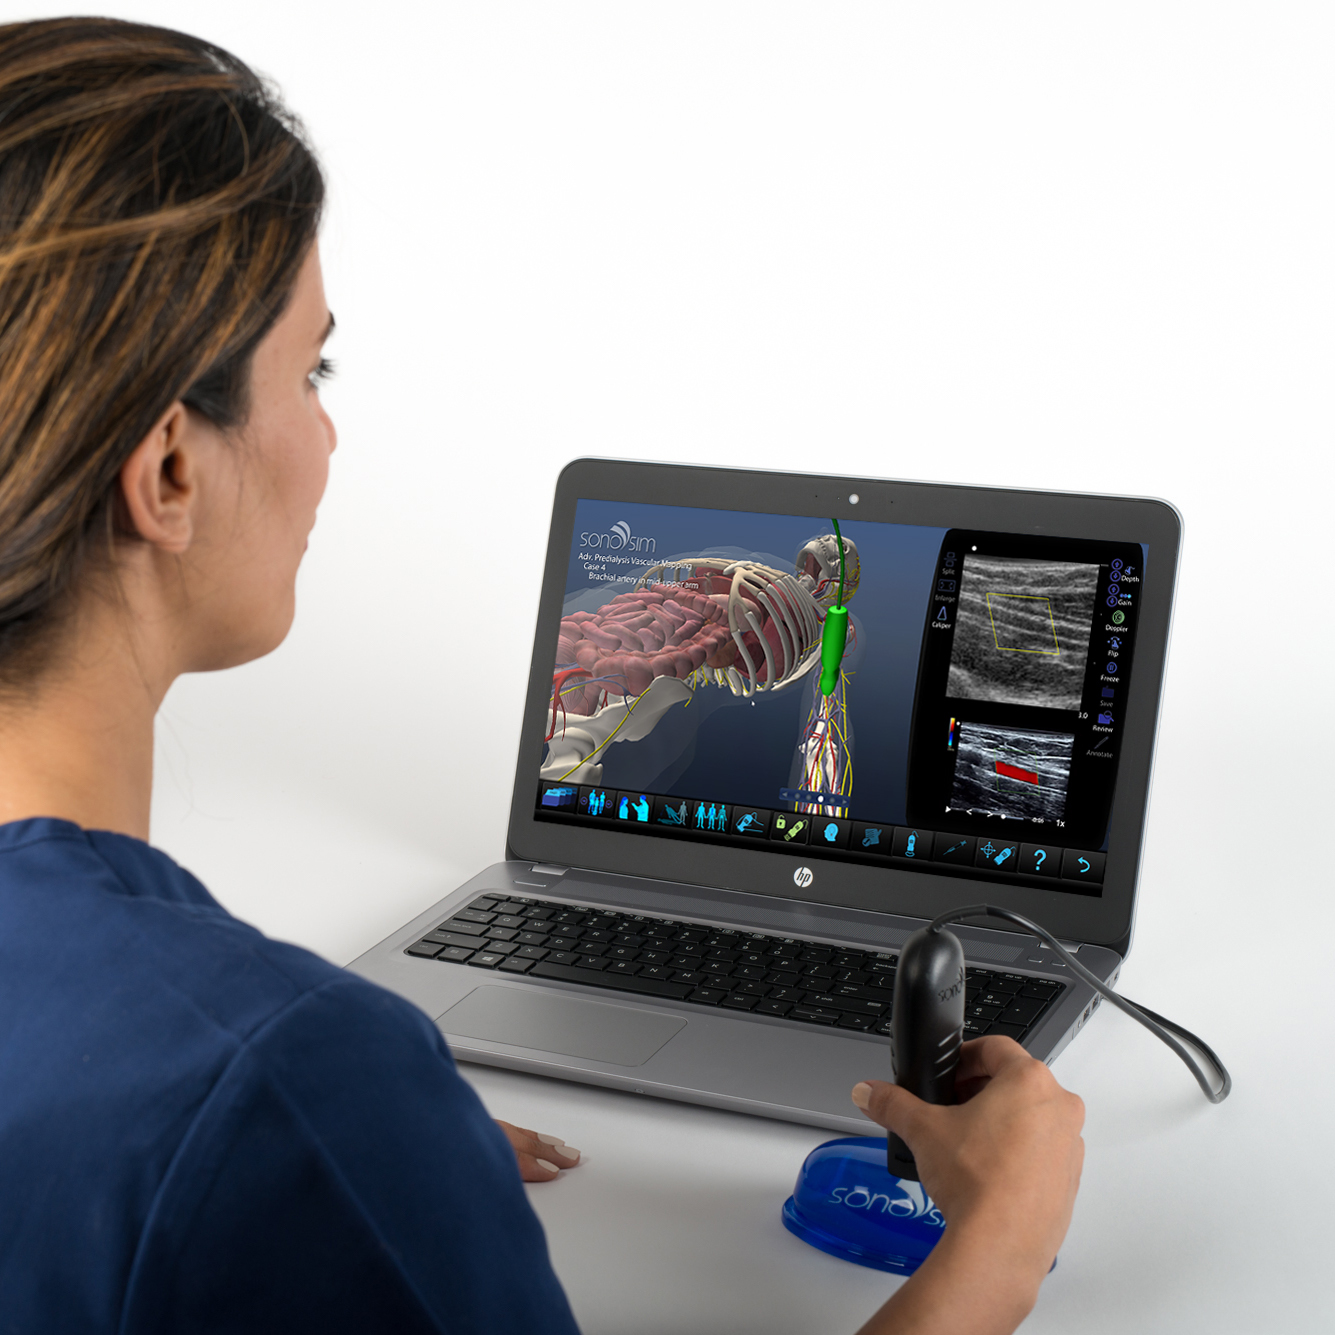 Ultrasound Simulator for Vascular Mapping for Preoperative Planning of Dialysis Access: Advanced Clinical Module